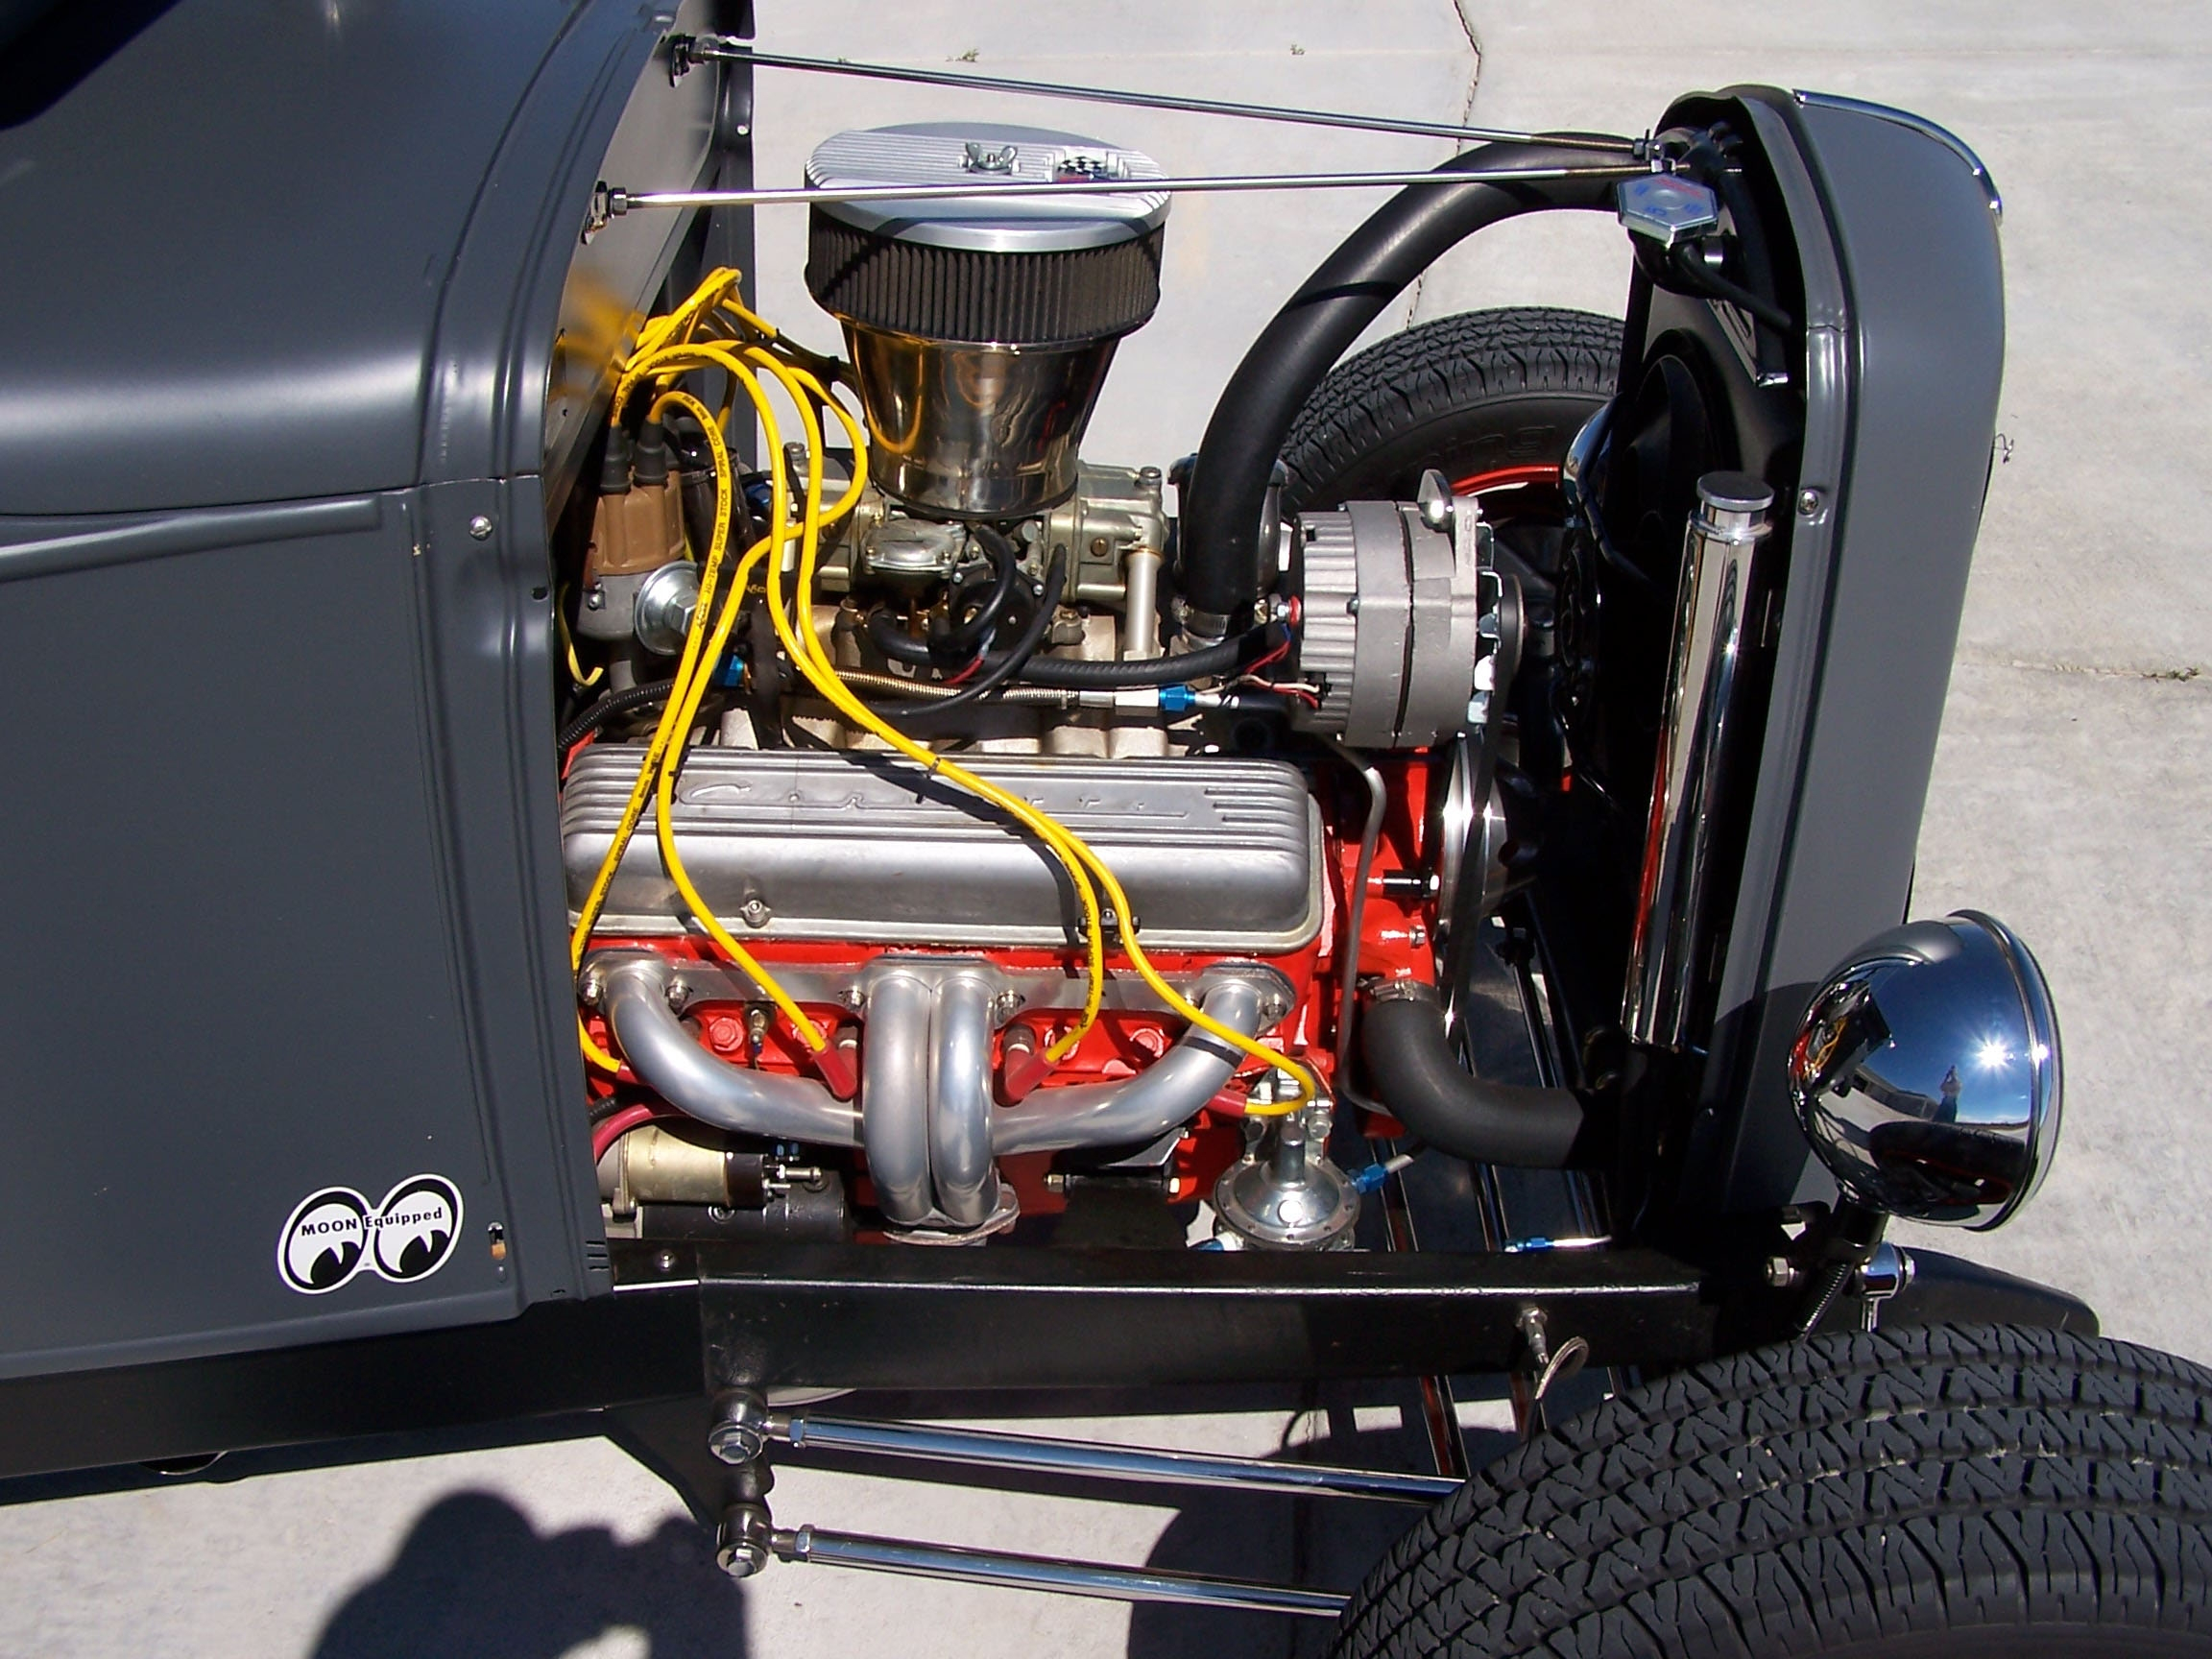 Click image for larger version  Name:Model A 350 Engine Sep 2004.JPG Views:134 Size:1.61 MB ID:48842